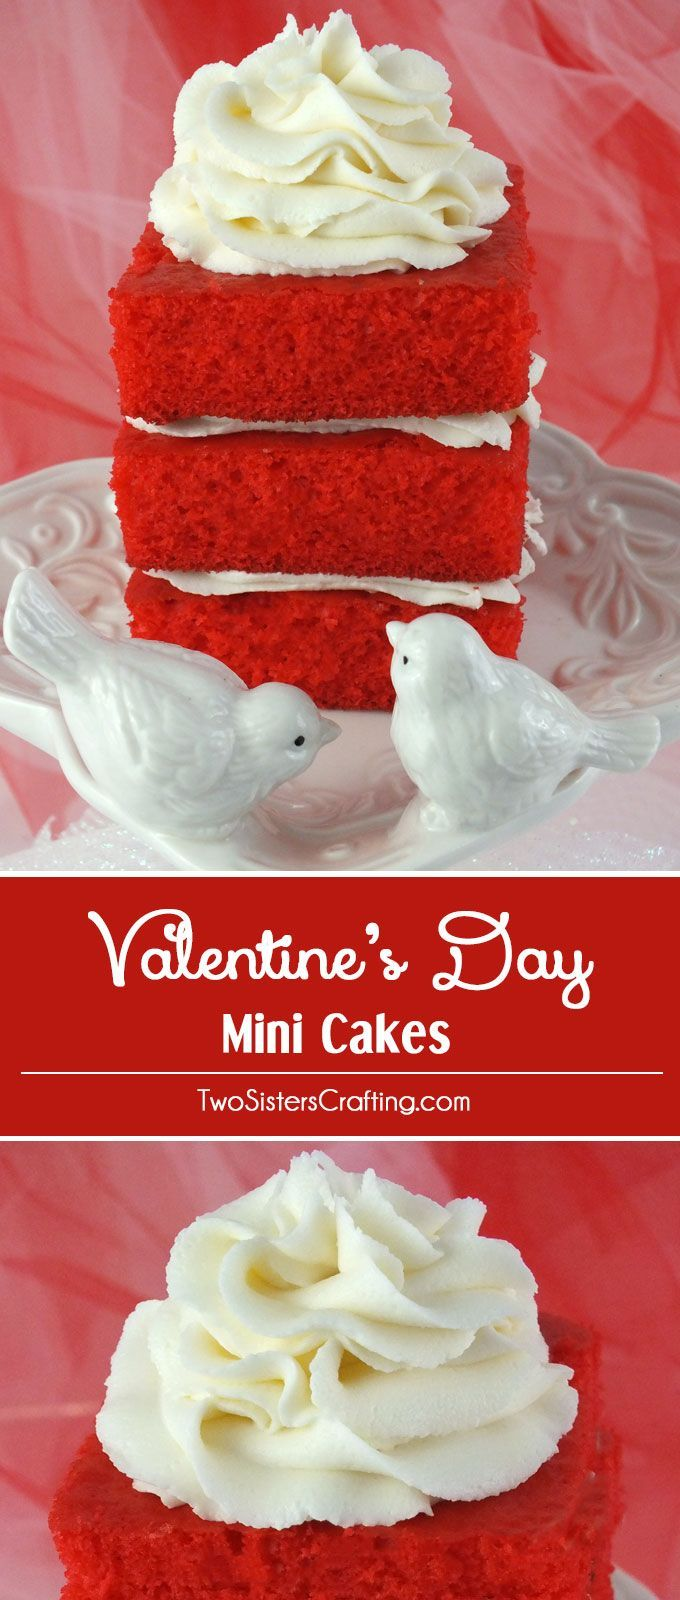 If you are looking for a Valentine's Day Dessert, look no further. These Valentine's Day Mini Cakes are a great Valentine's Day Treat for your special someone. So beautiful and so yummy, this unique take on a cupcake is sure to make an impression with your loved ones. Follow us for more great Valentines Day Food Ideas.